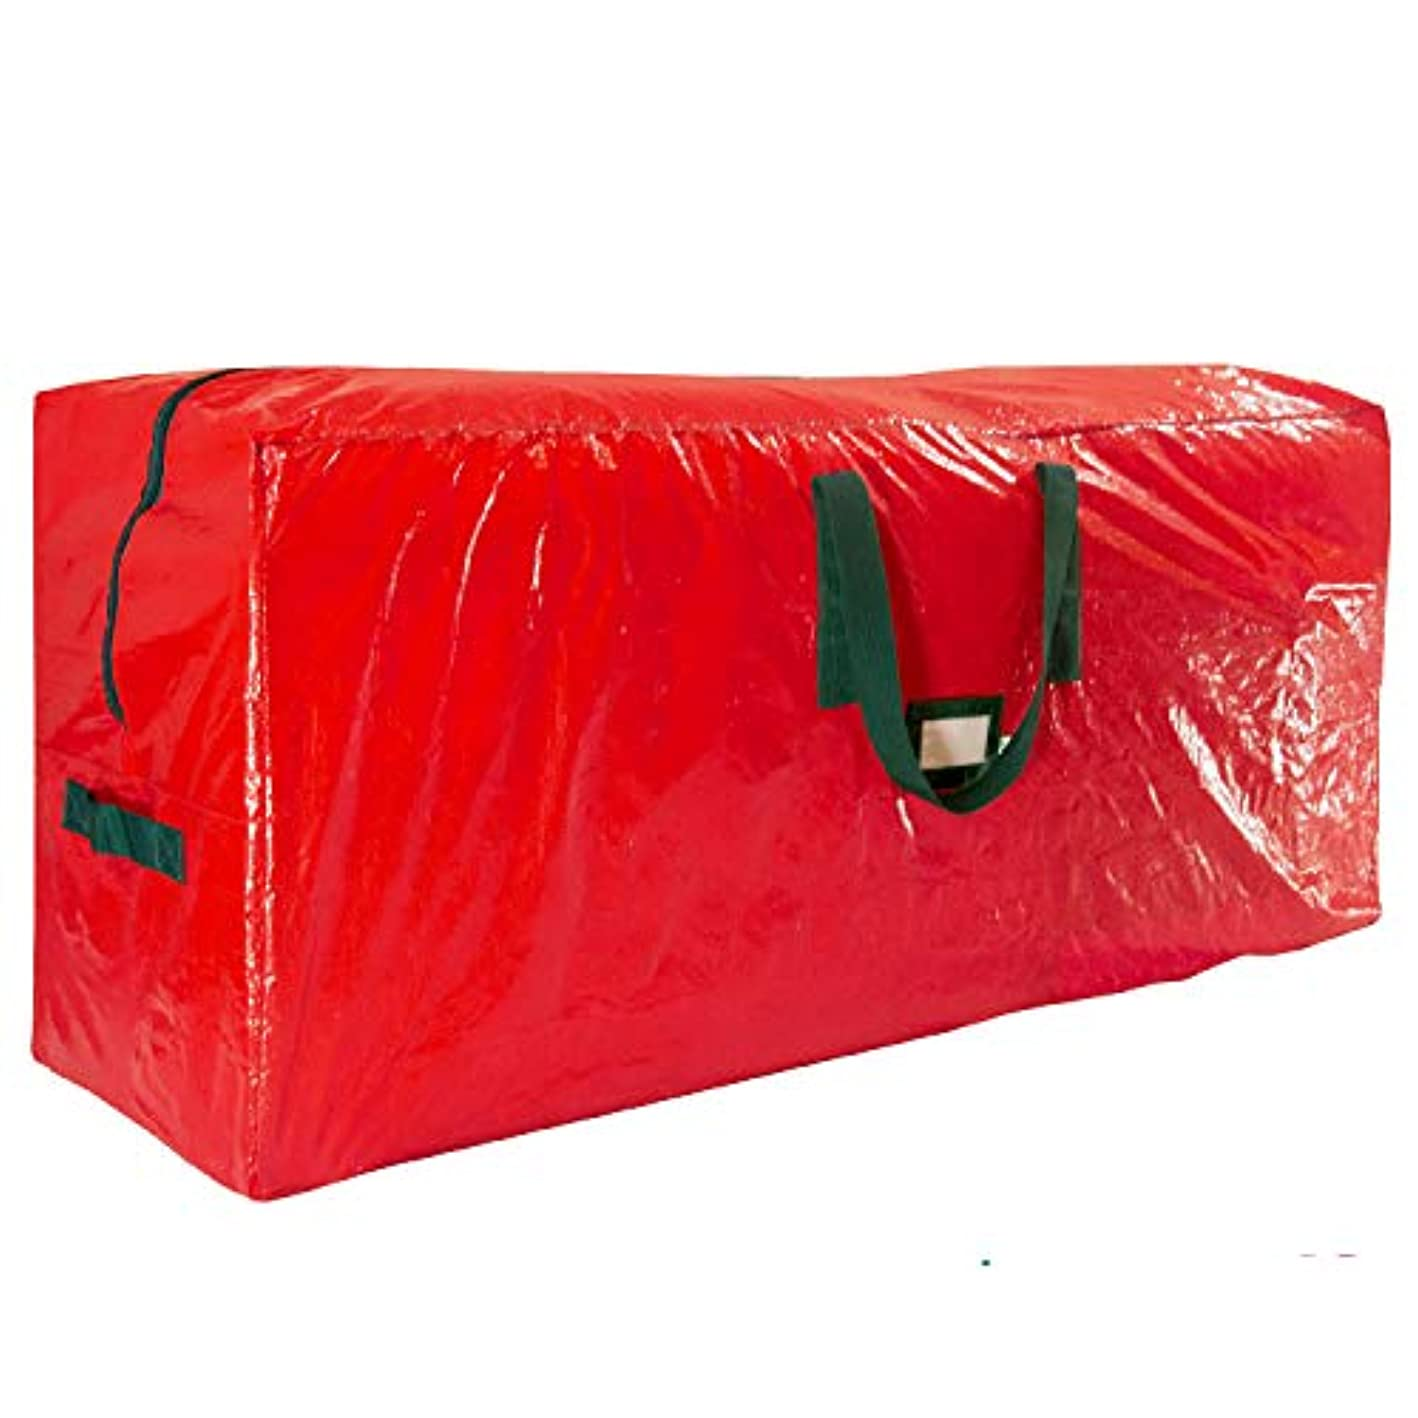 Premium Red Large Holiday Christmas Tree Storage Bag-Fits Trees Up to 7 Feet Tall-Tear Resistant Zippered Bag with Reinforced Handles -48